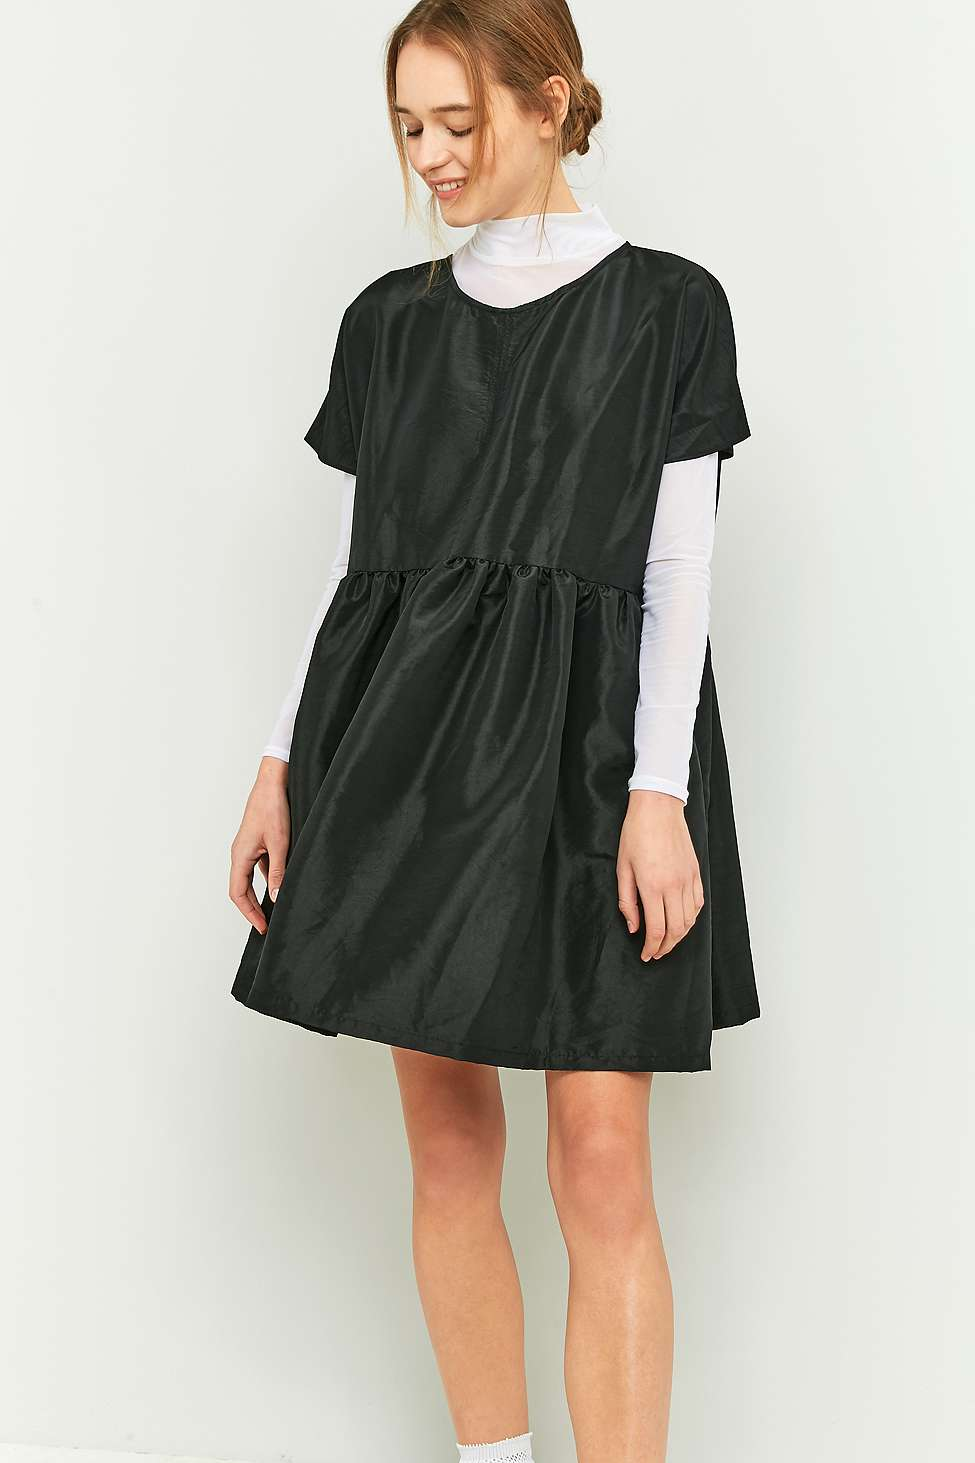 rework by Urban Outfitters Black Babydoll Dress | Urban Outfitters